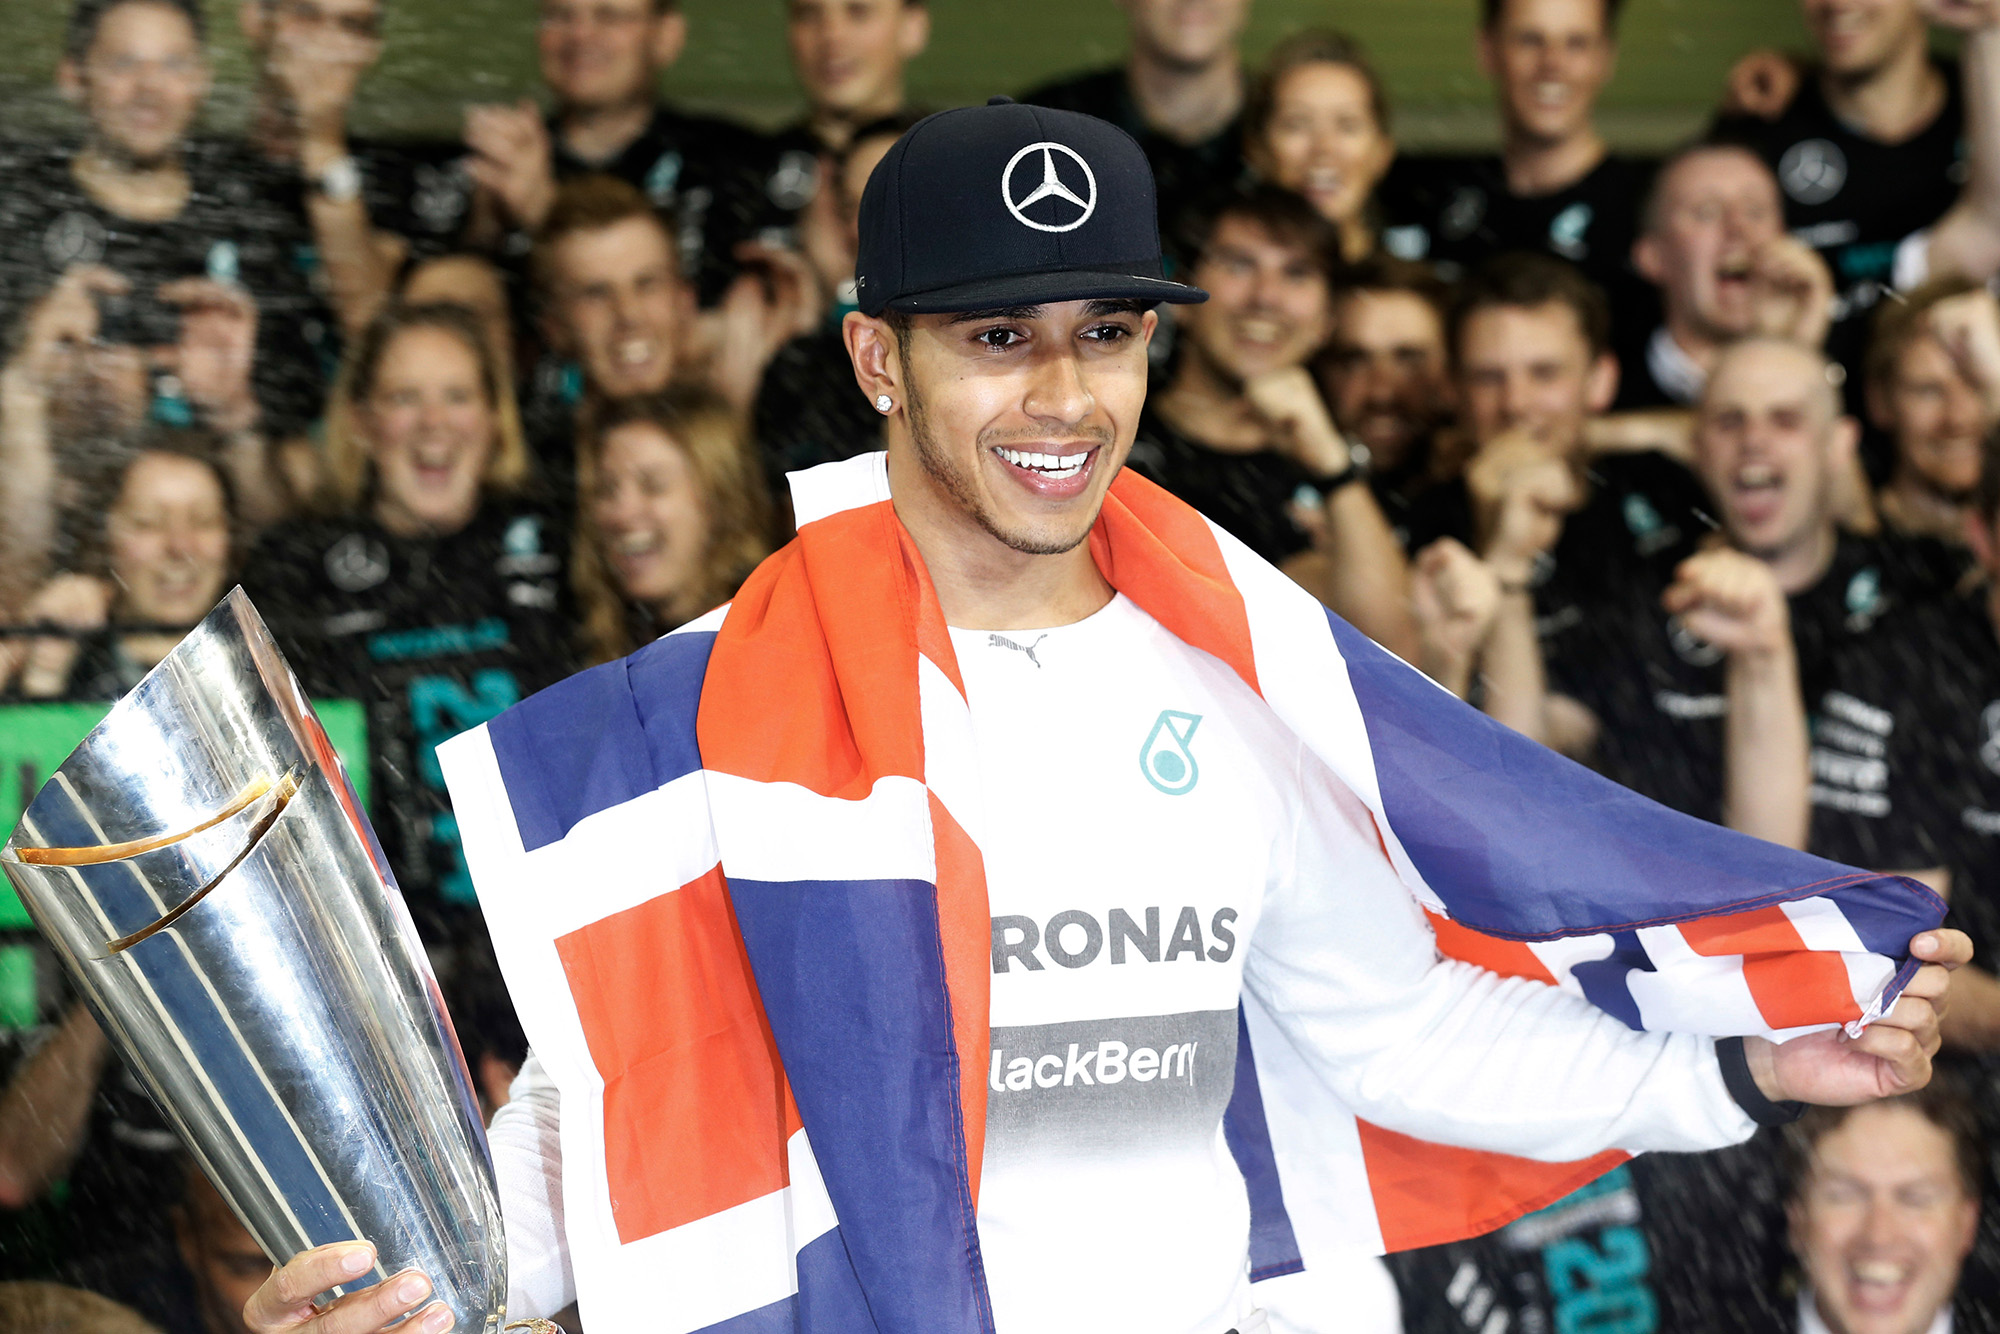 Lewis Hamilton celebrates winning his second F1 world championship in 2014